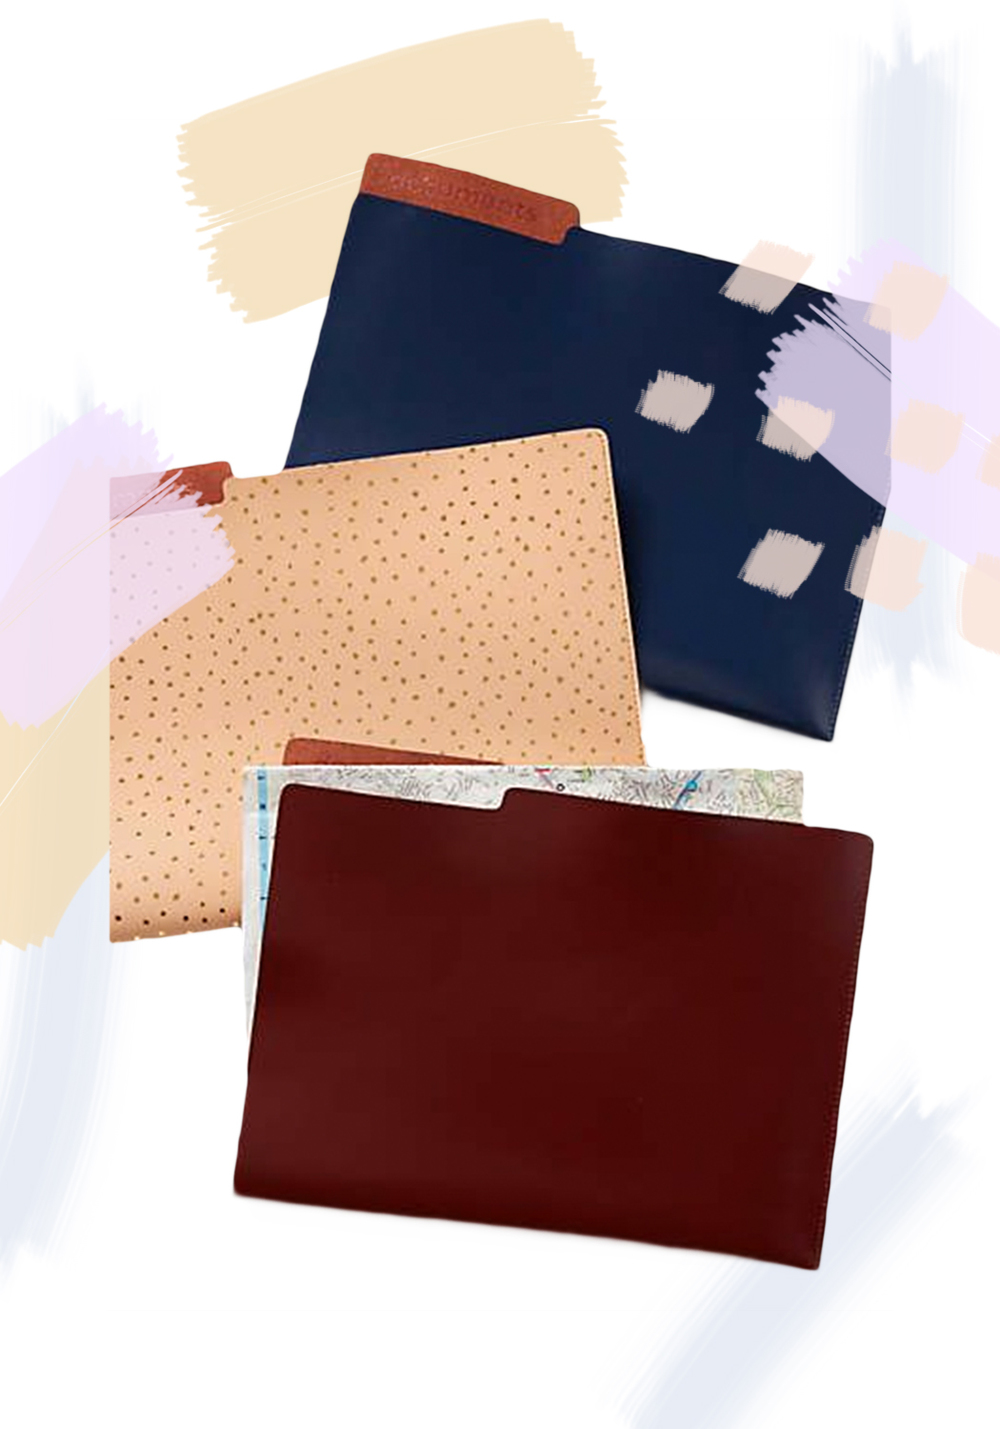 Anthropologie - Leather File Folder - $38